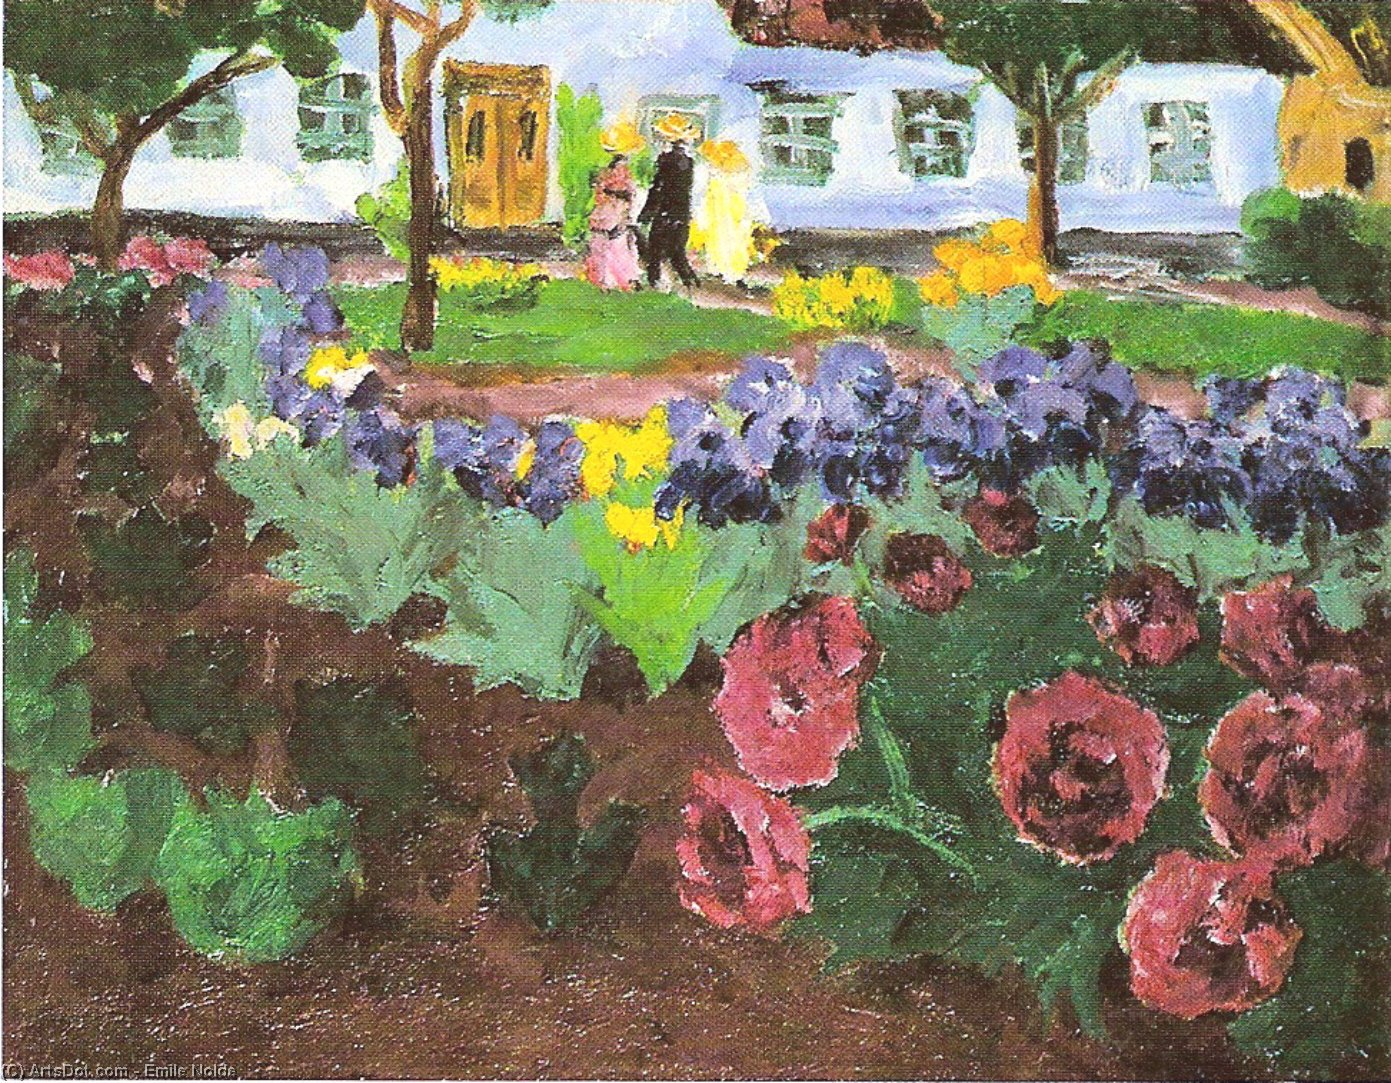 Garden with flowers, 1916 by Emile Nolde (1867-1956, Germany)